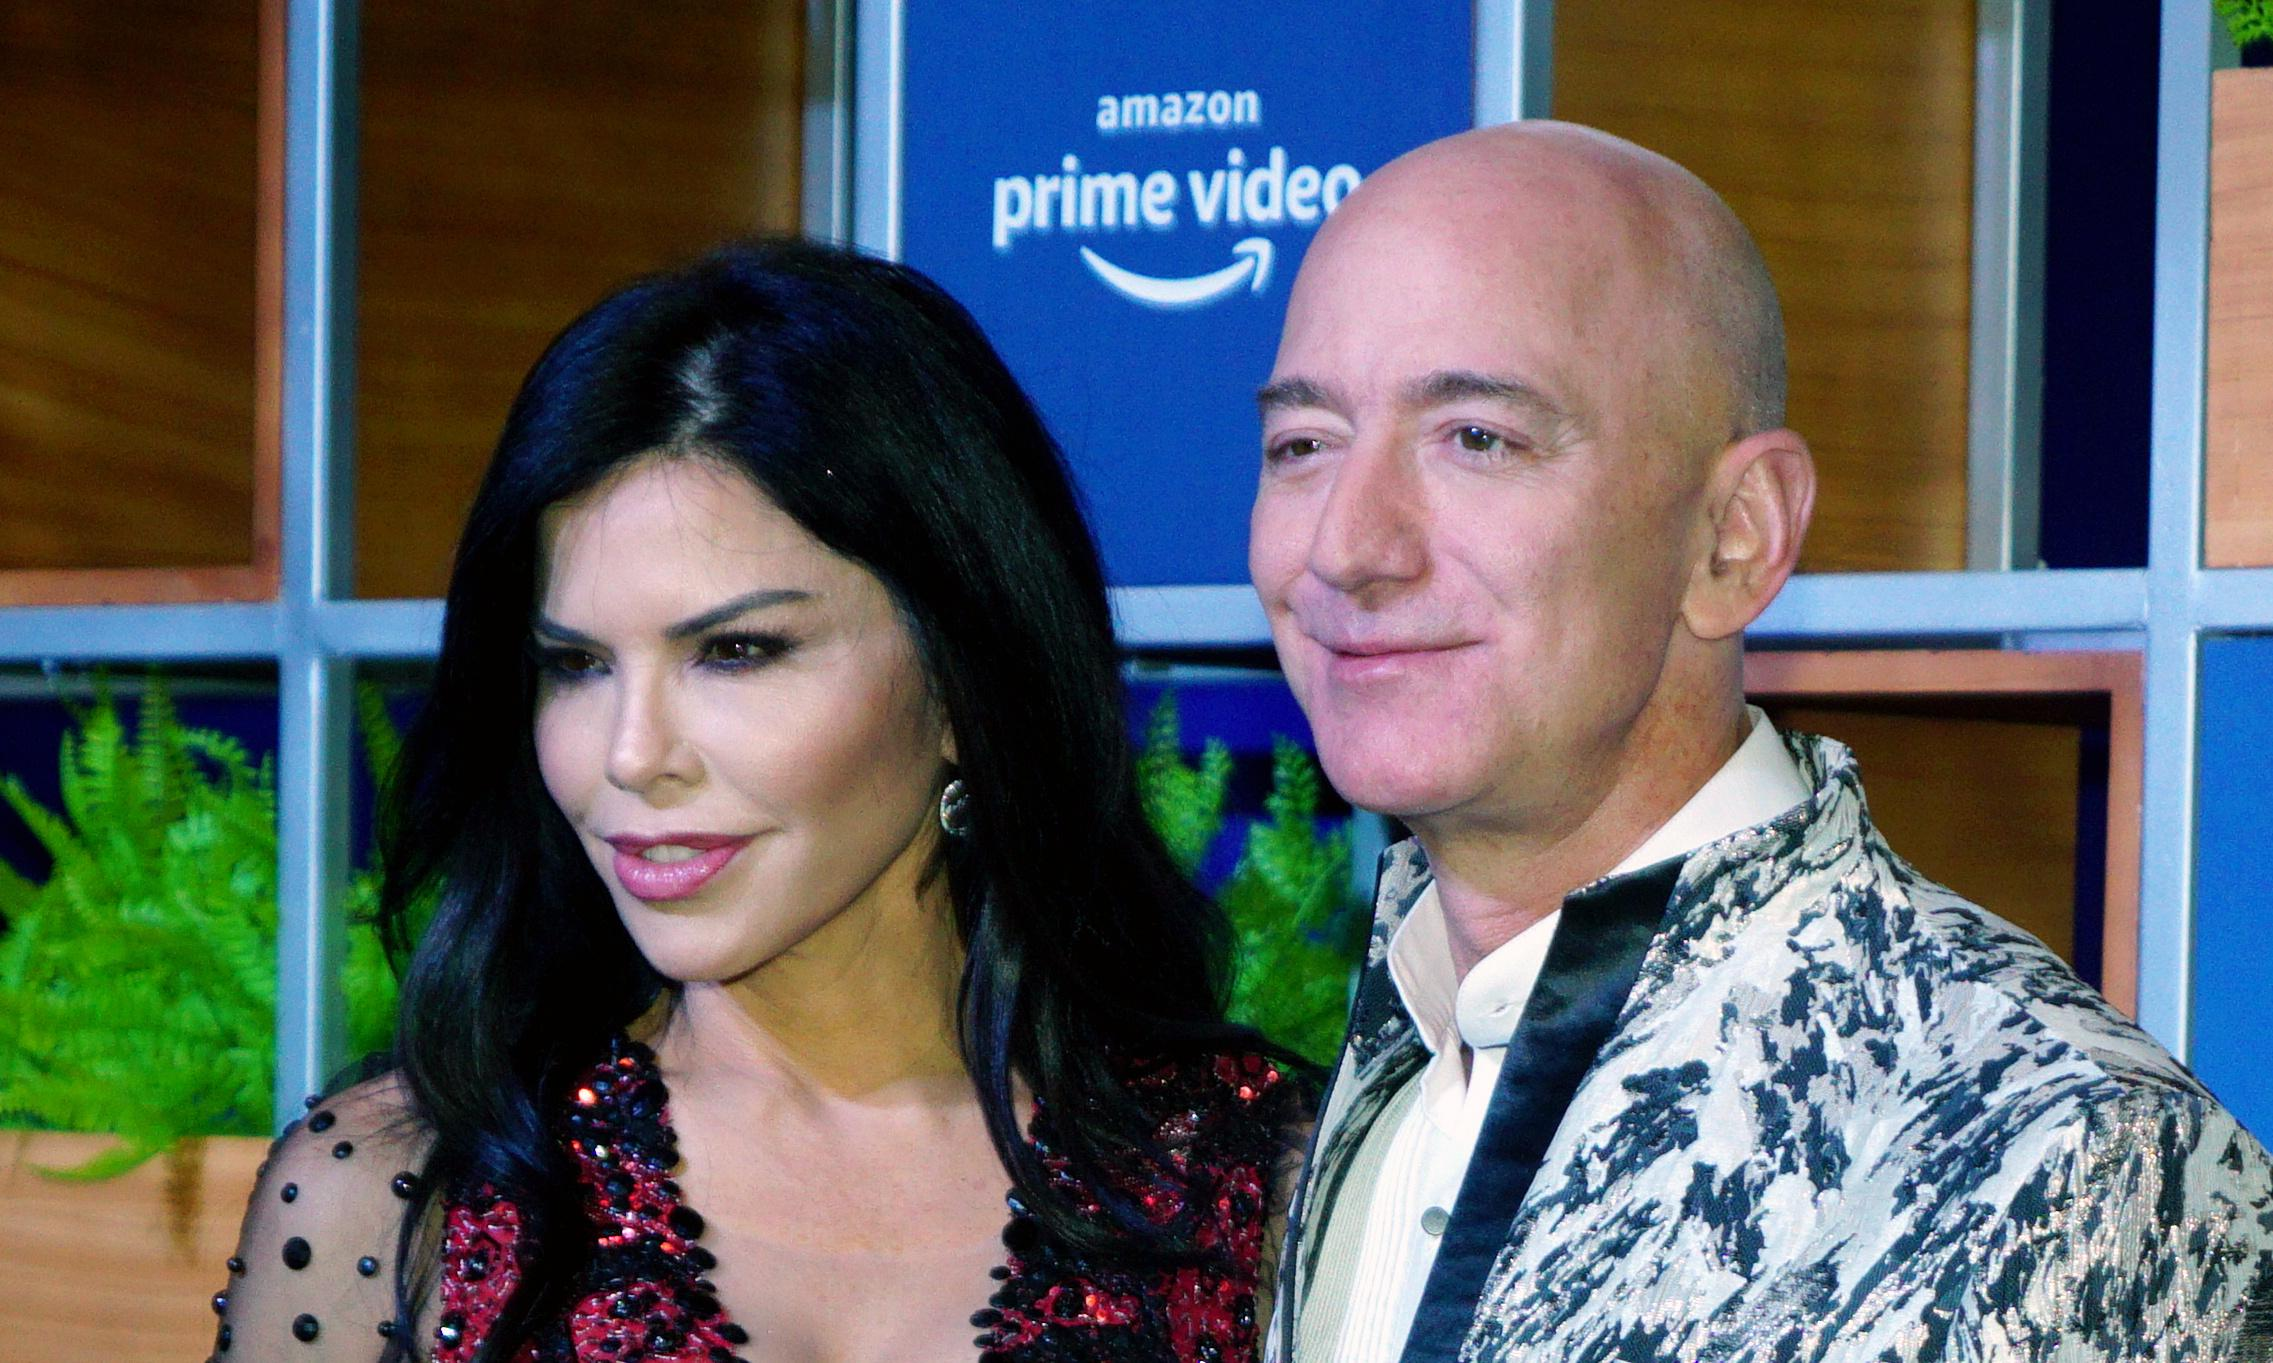 Jeff Bezos buys lavish Beverly Hills estate for record $165m – report